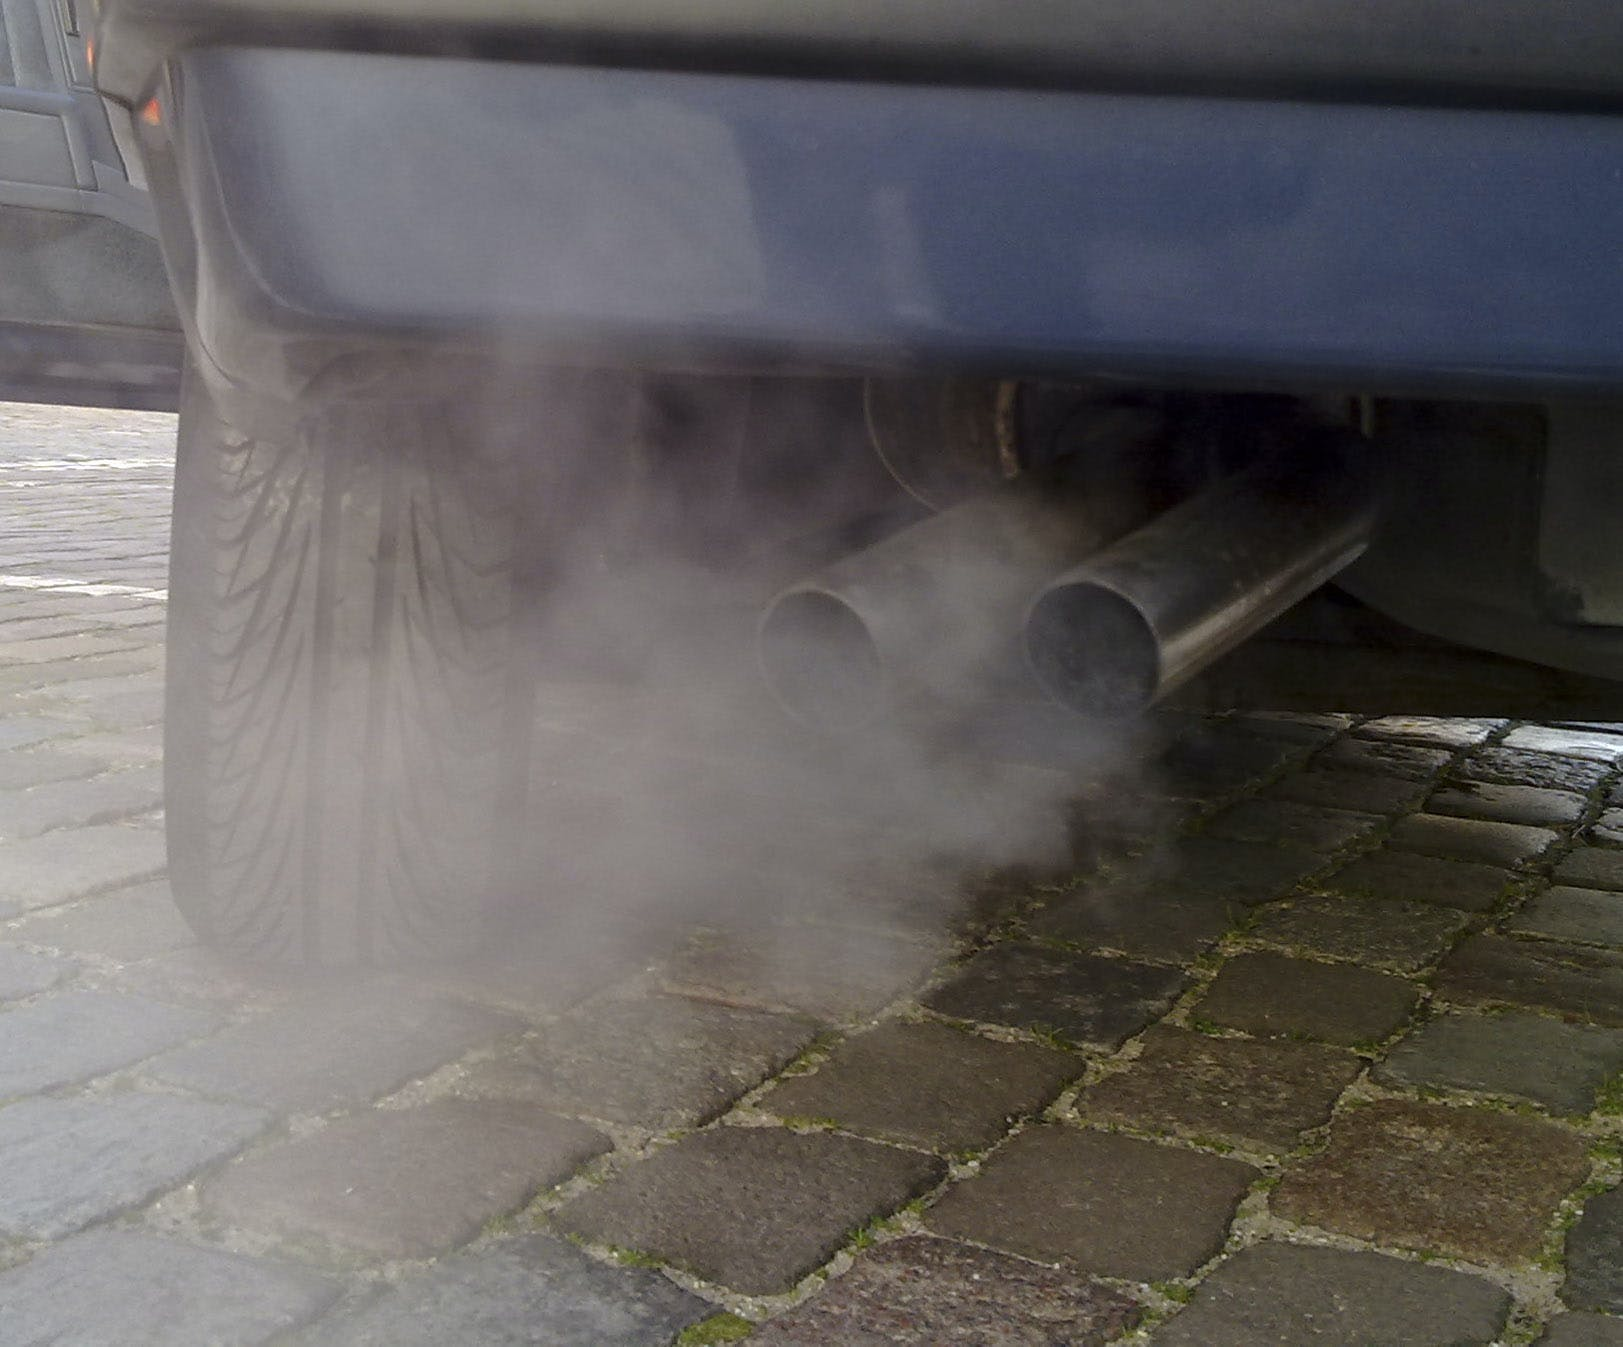 What's Involved in an Emissions Inspection?